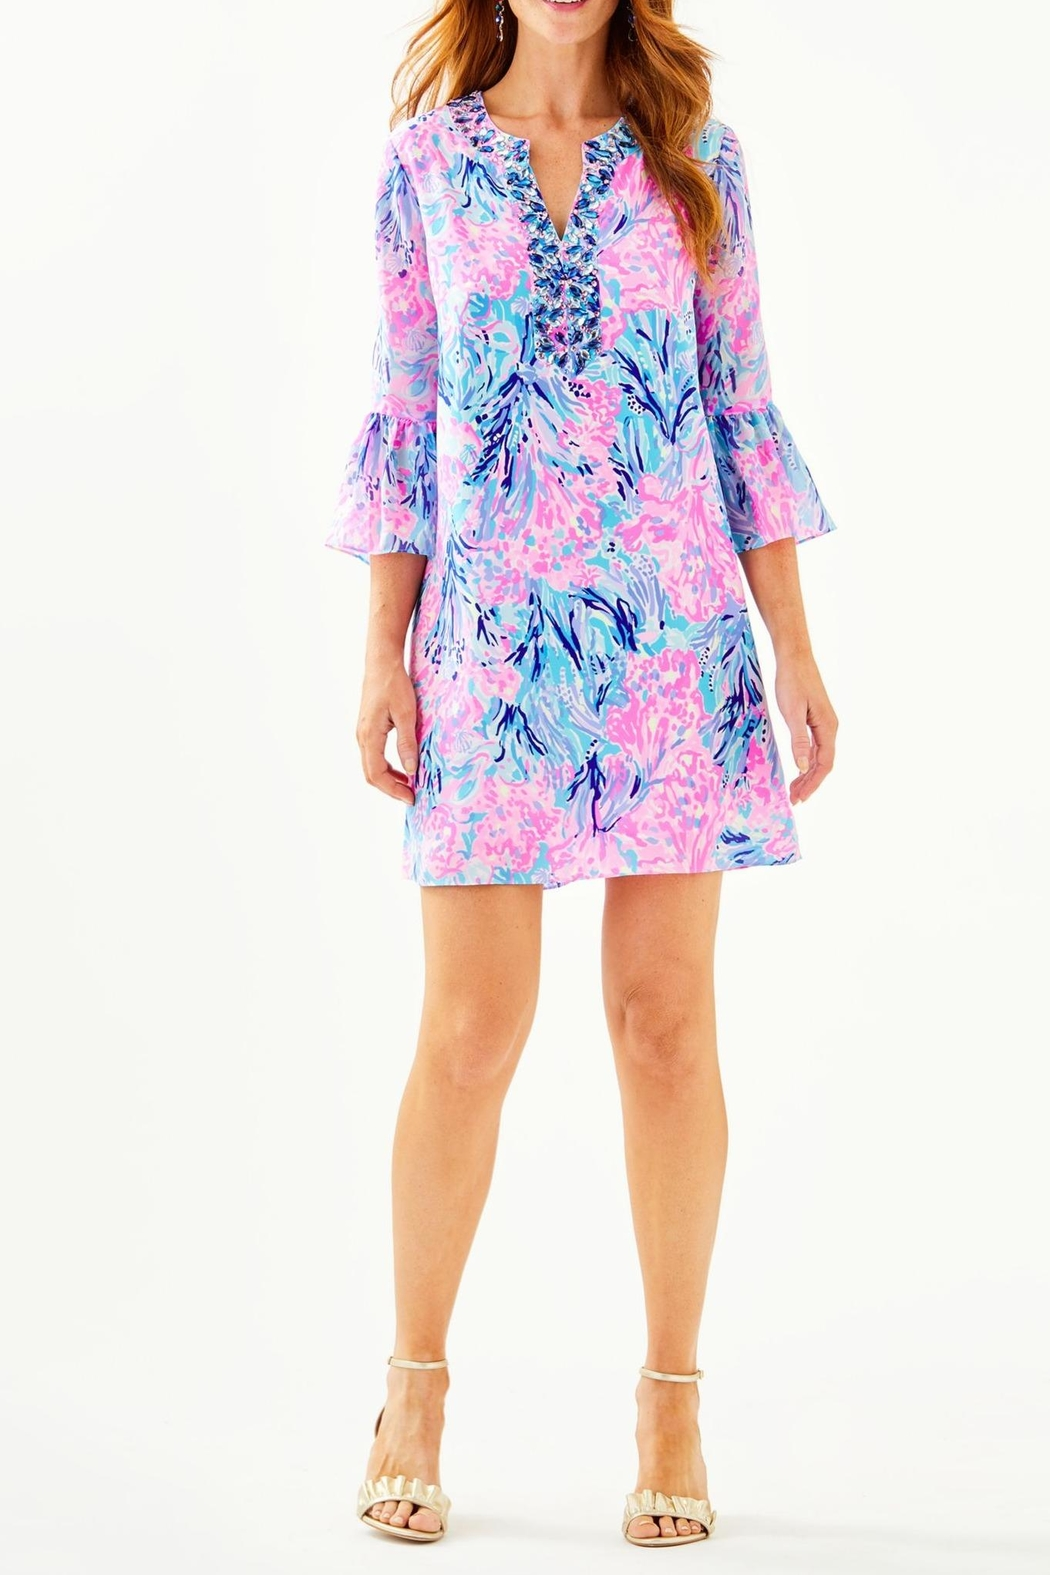 Lilly Pulitzer Elenora Silk Dress - Back Cropped Image